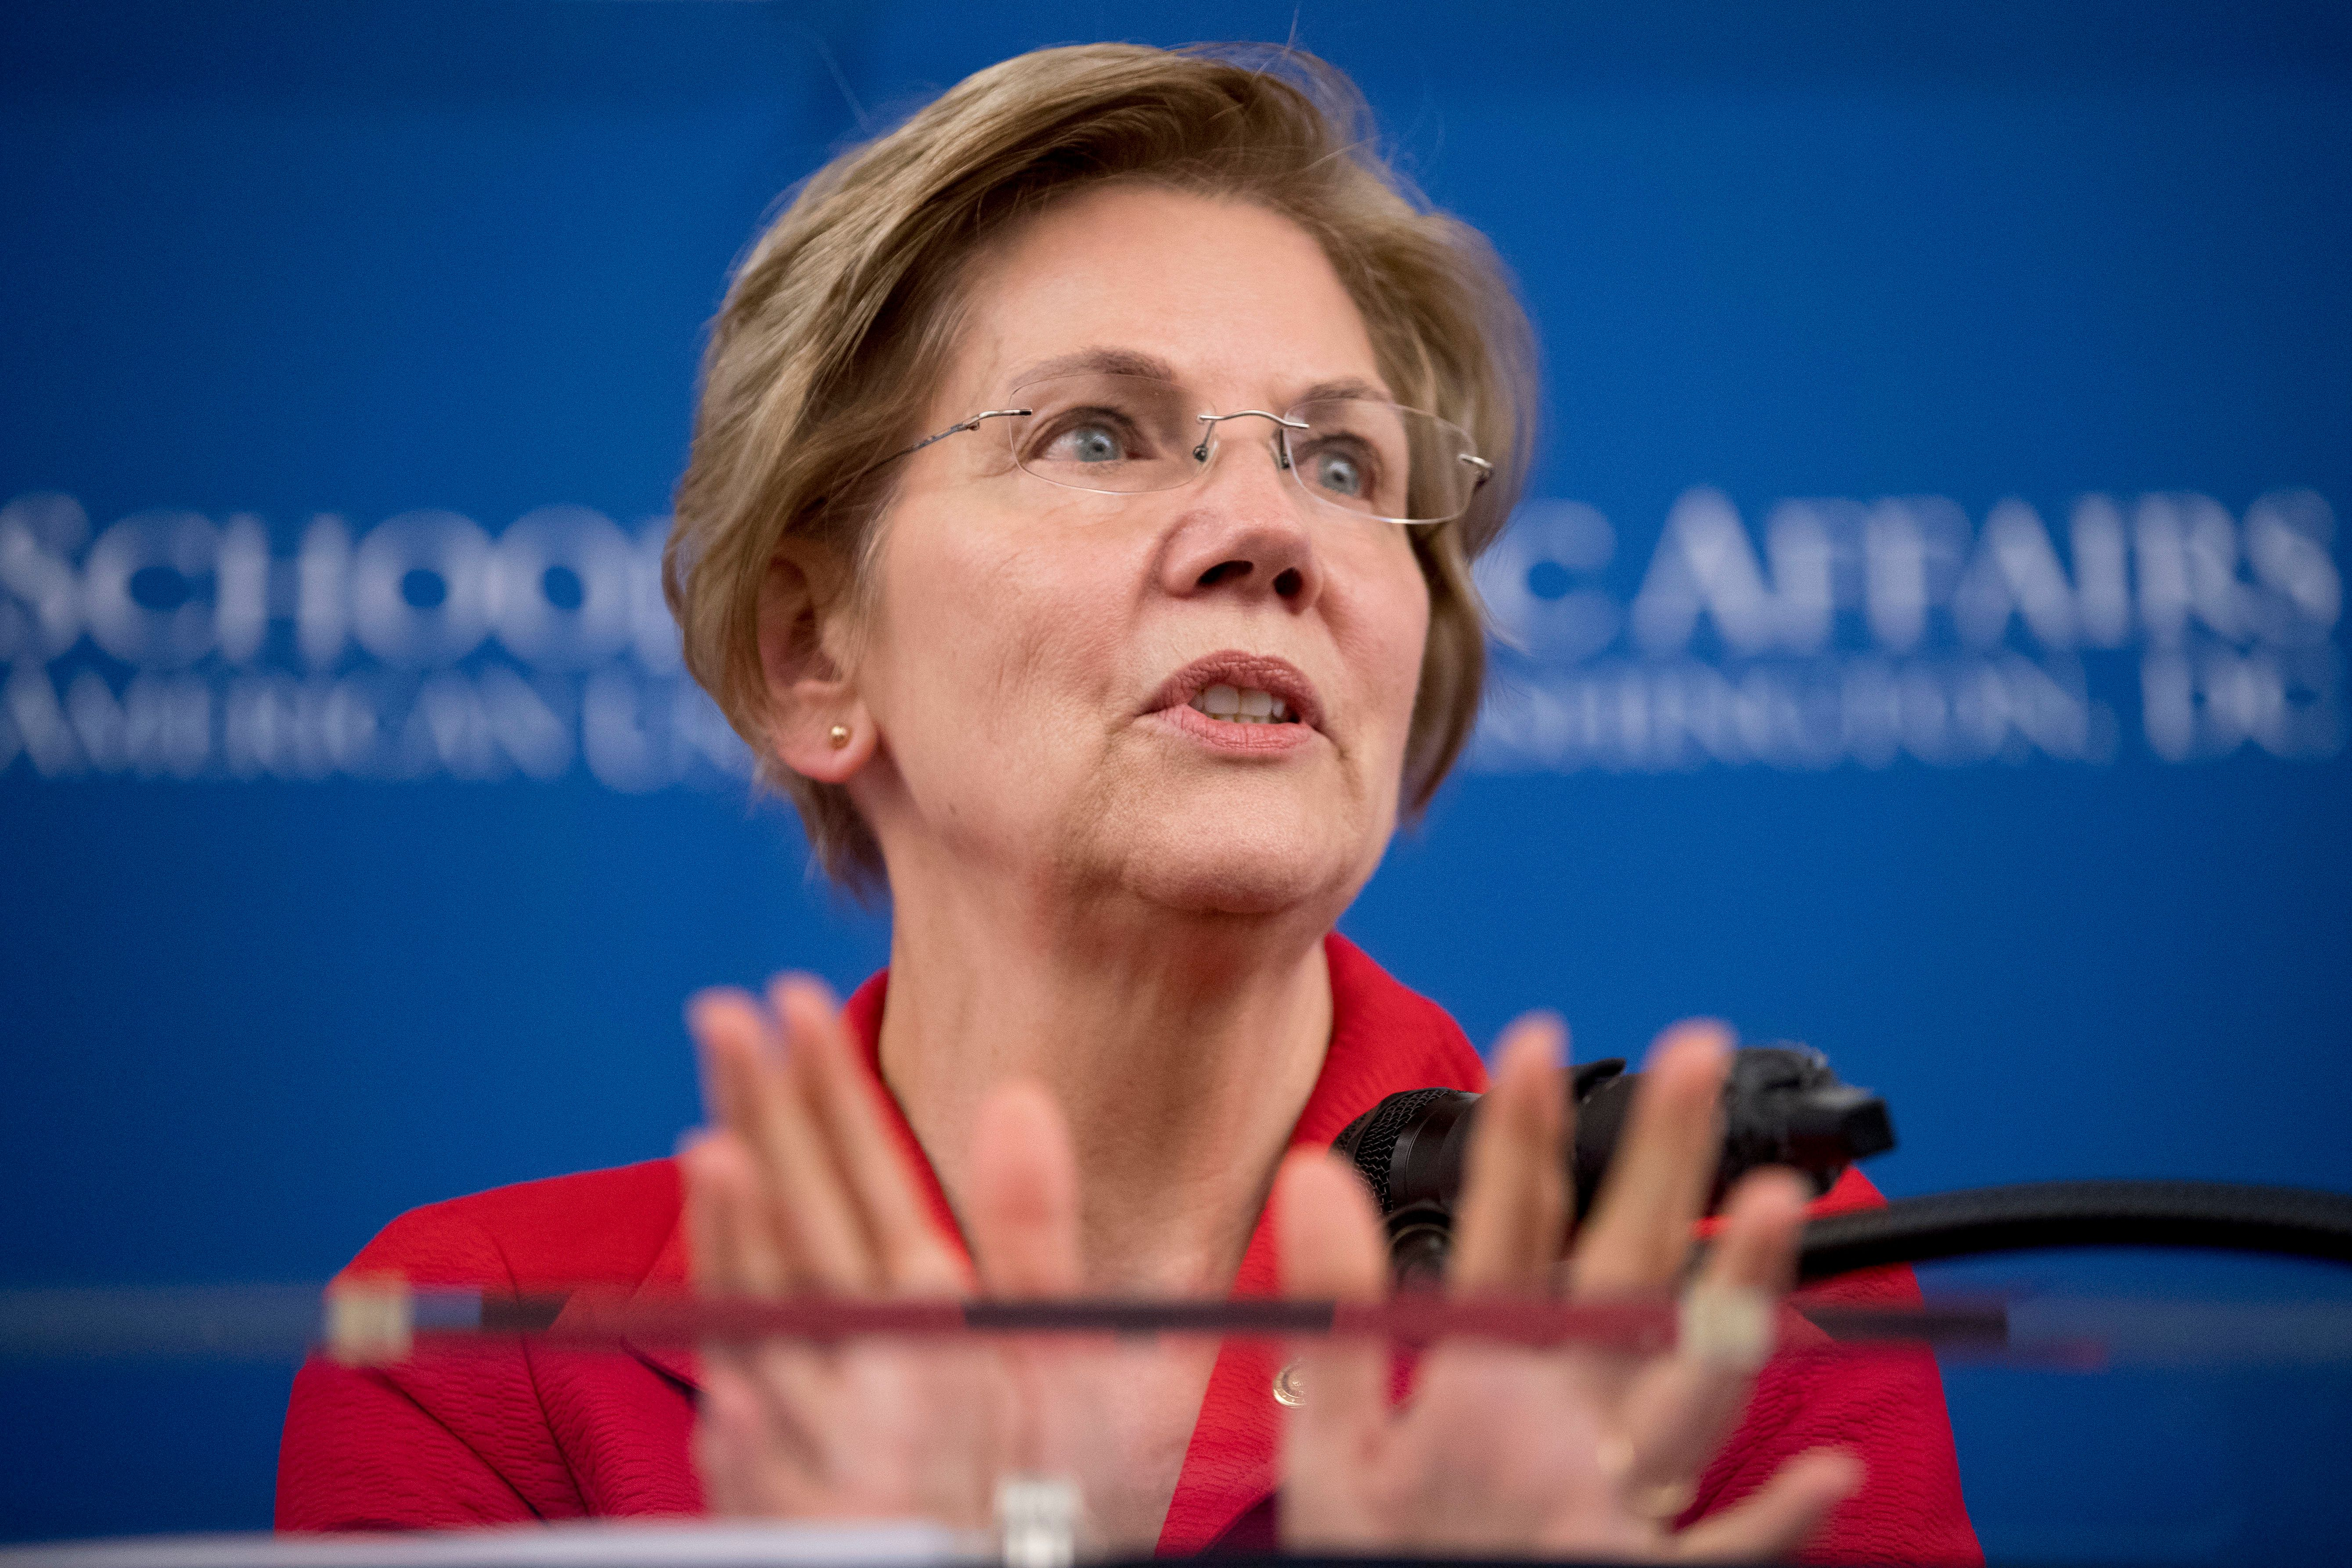 """Elizabeth Warren """"deserves credit for saying what most in Washington refuse to admit,"""" write Stephen Miles and Kate Kizer."""